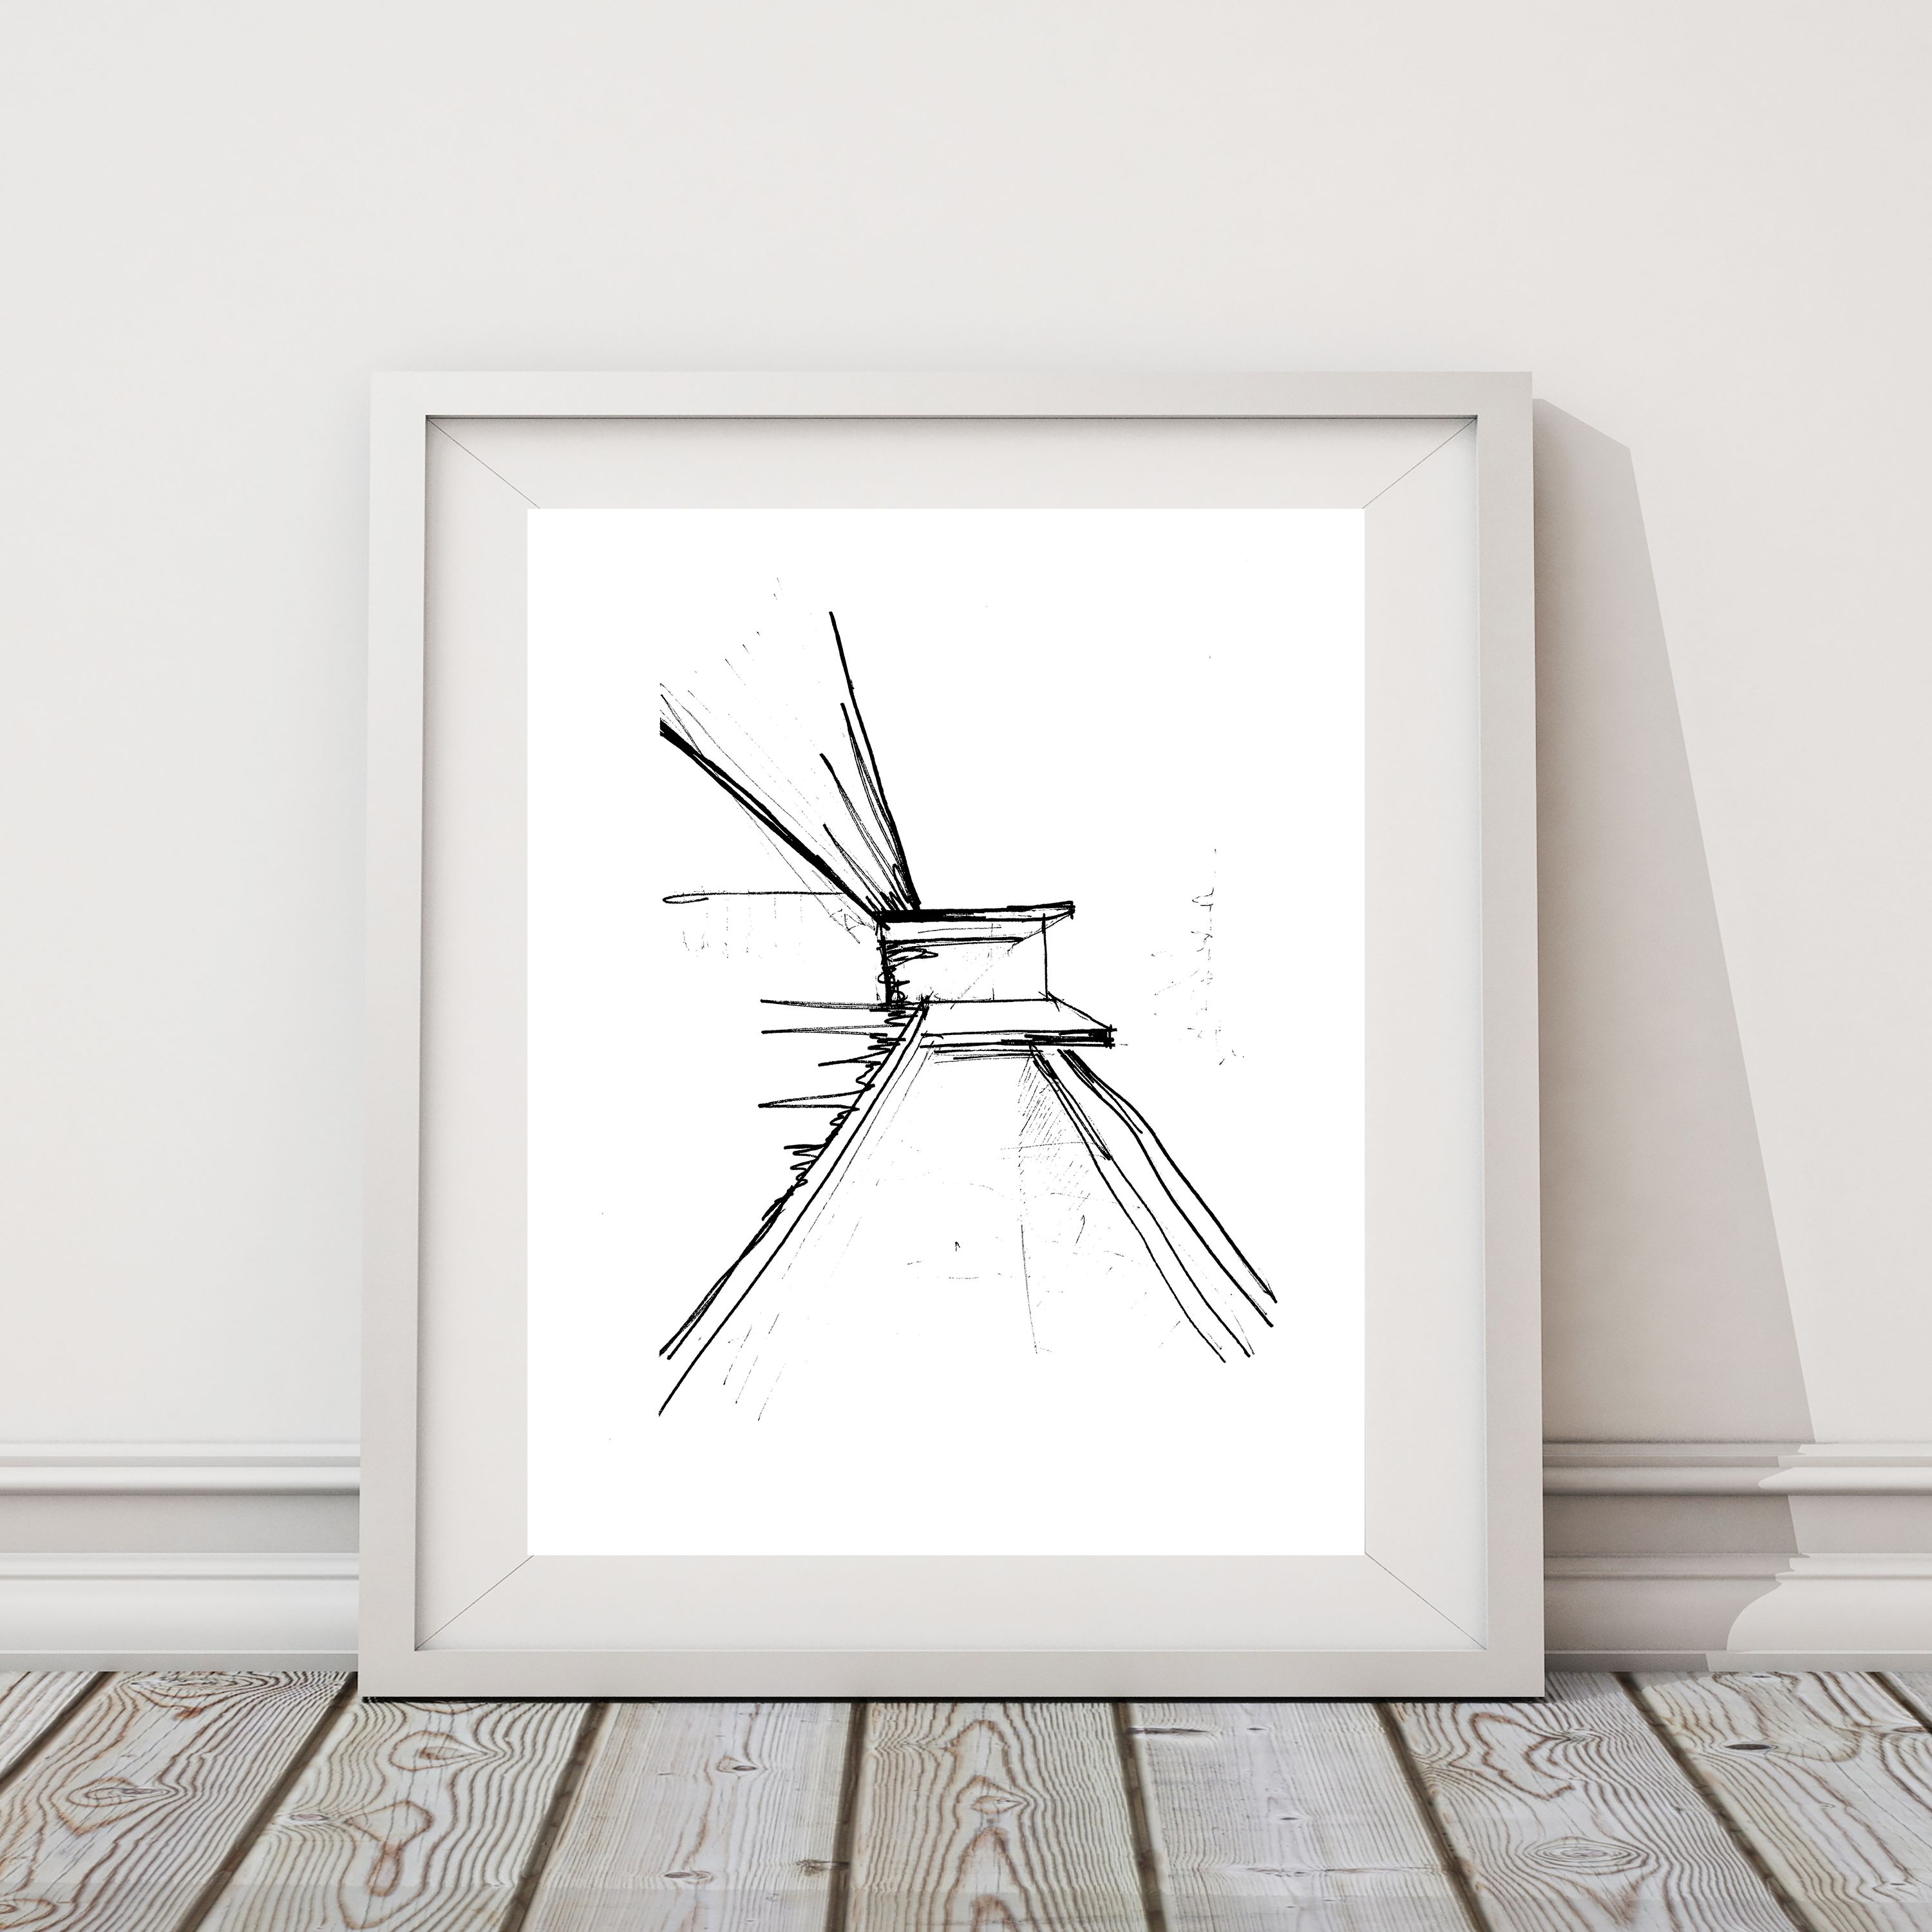 This mid century modern art print will enhance any home or office